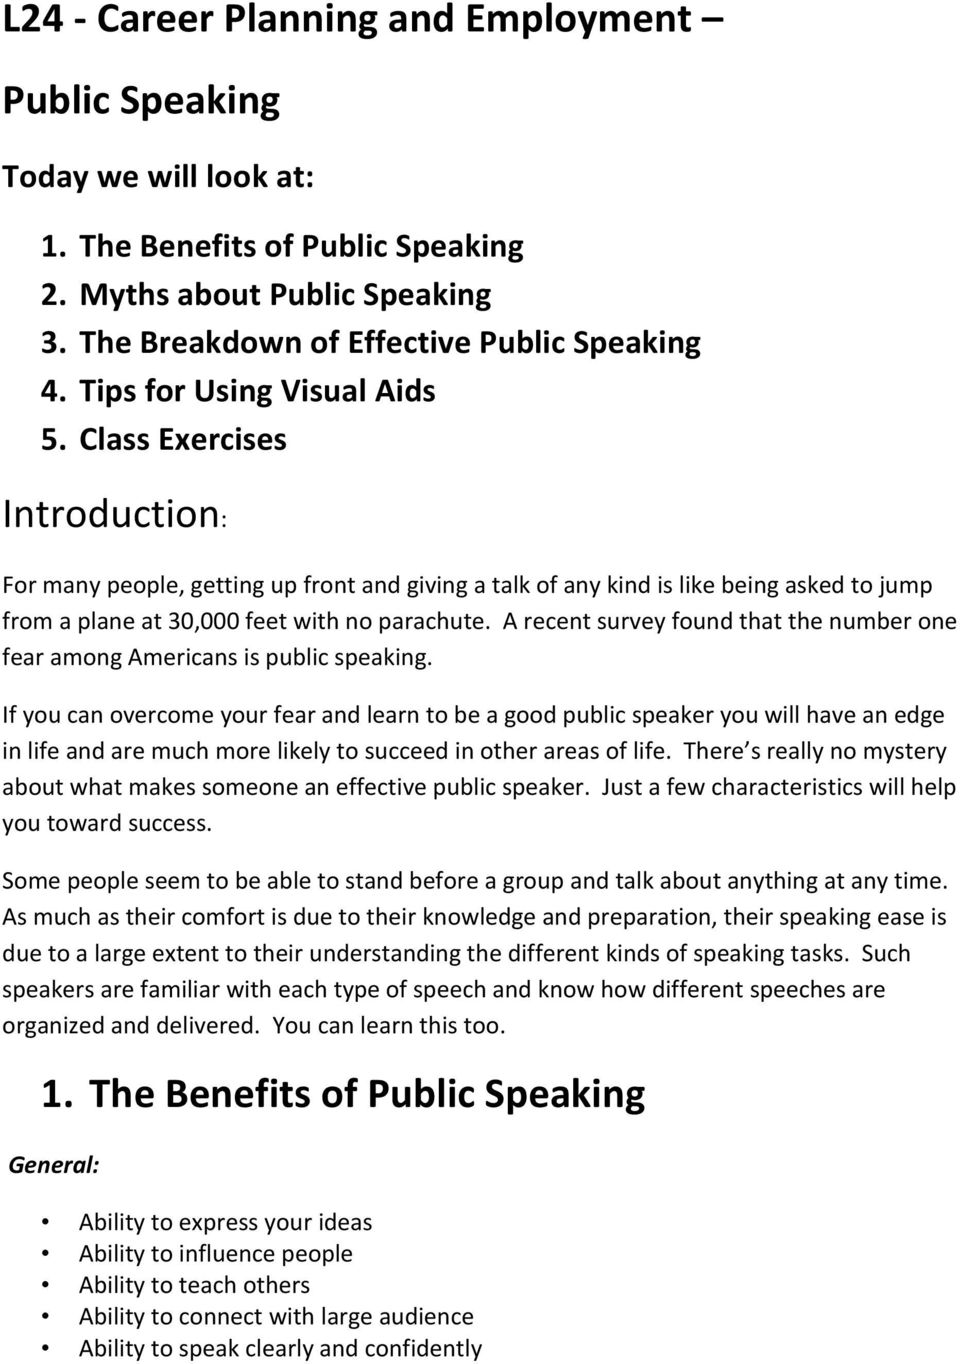 The benefits of public speaking in my life